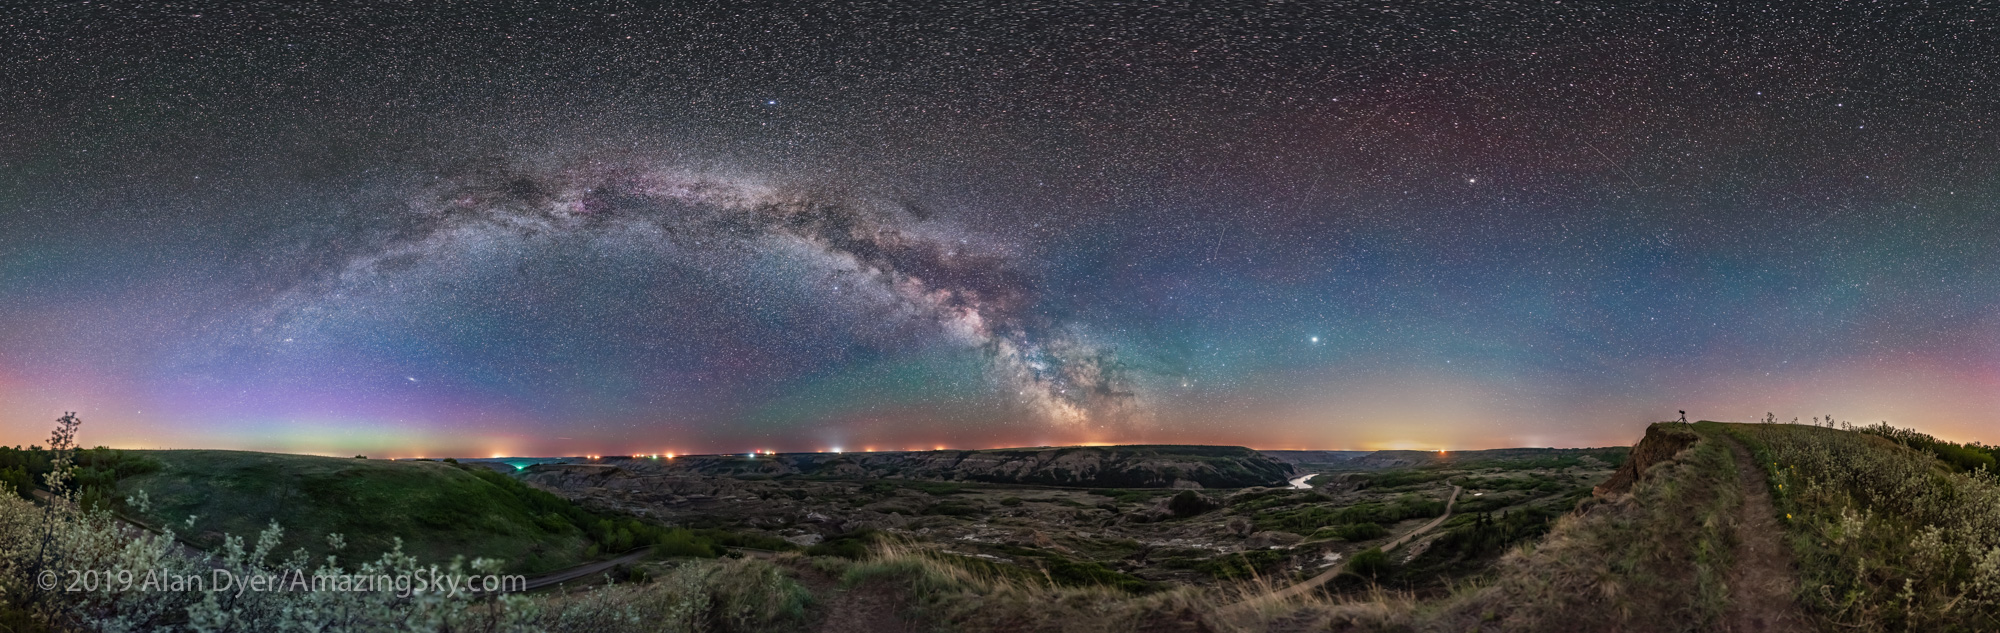 Milky Way over Dry Island Buffalo Jump